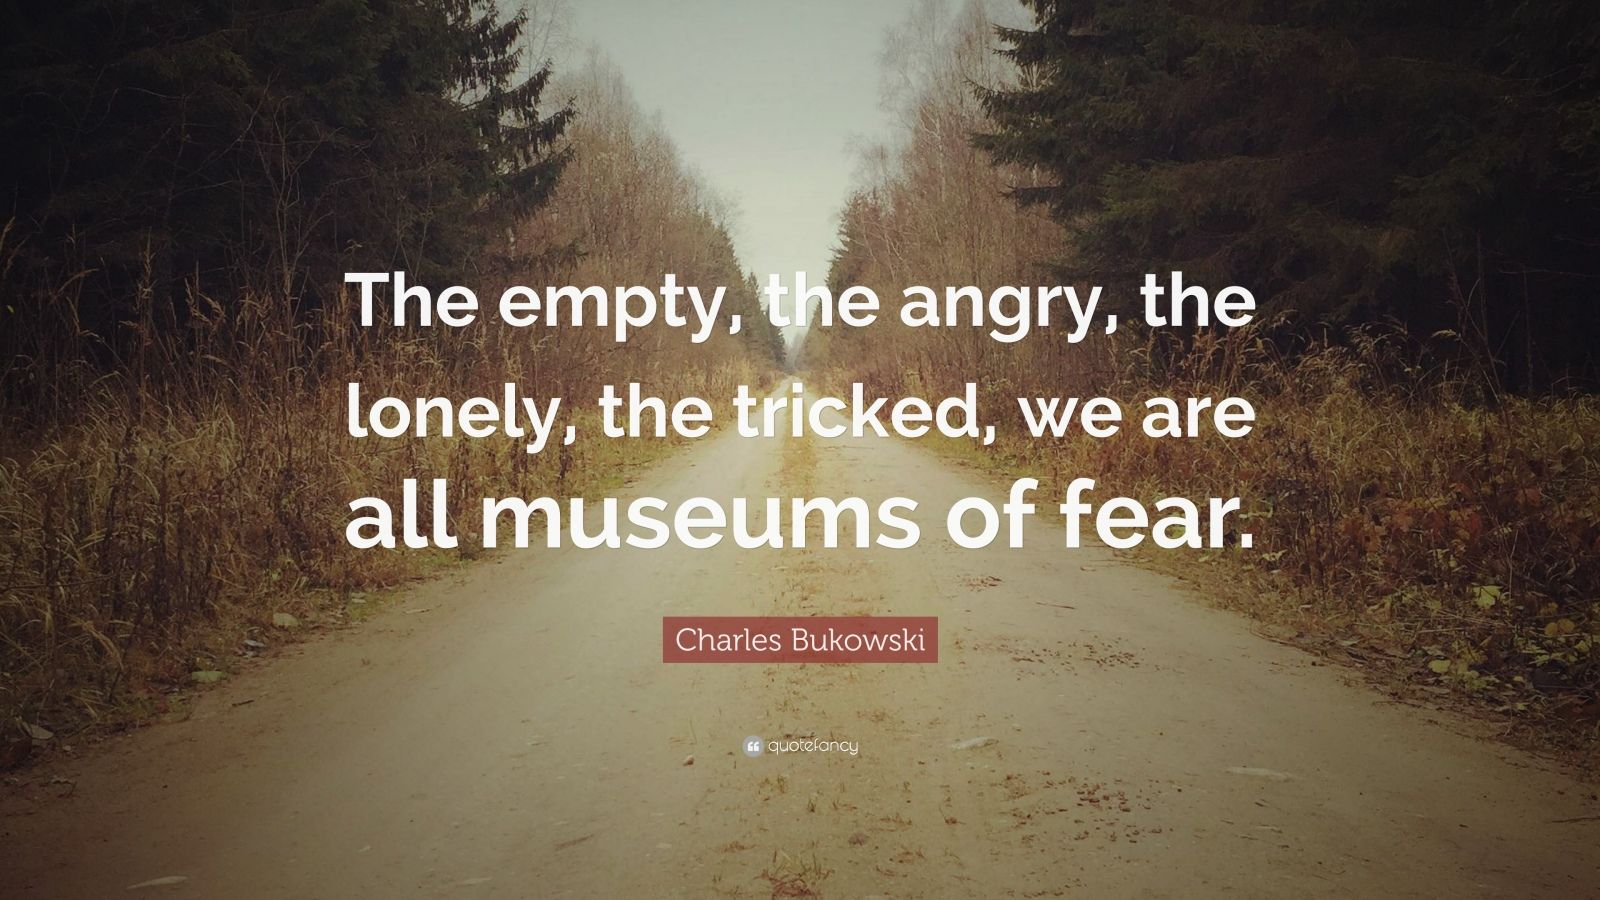 """Charles Bukowski Quote: """"The empty, the angry, the lonely, the tricked, we are all museums of fear."""""""